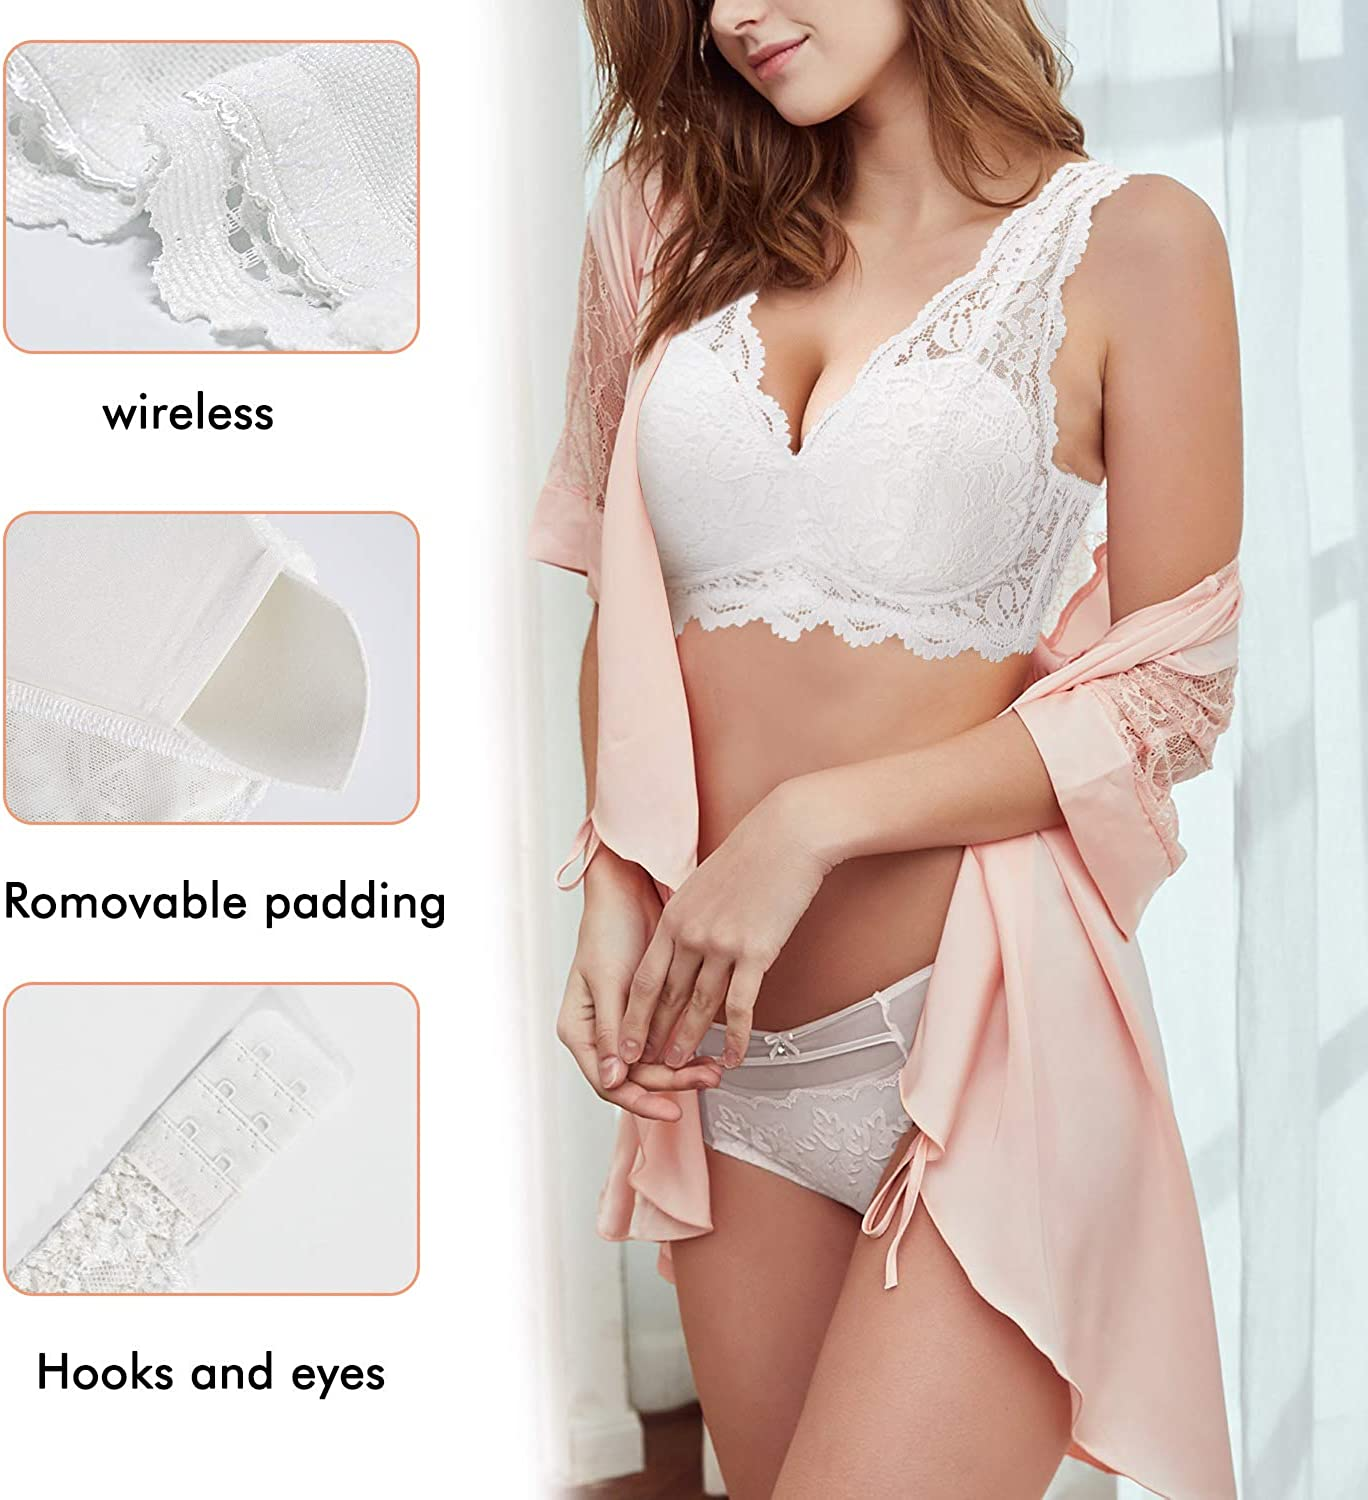 Rolewpy Women Lace Bralette Padded Deep V Neck Bra Wirefree Crop Tops with Adjustable Closure Plunge Lingerie Camisole